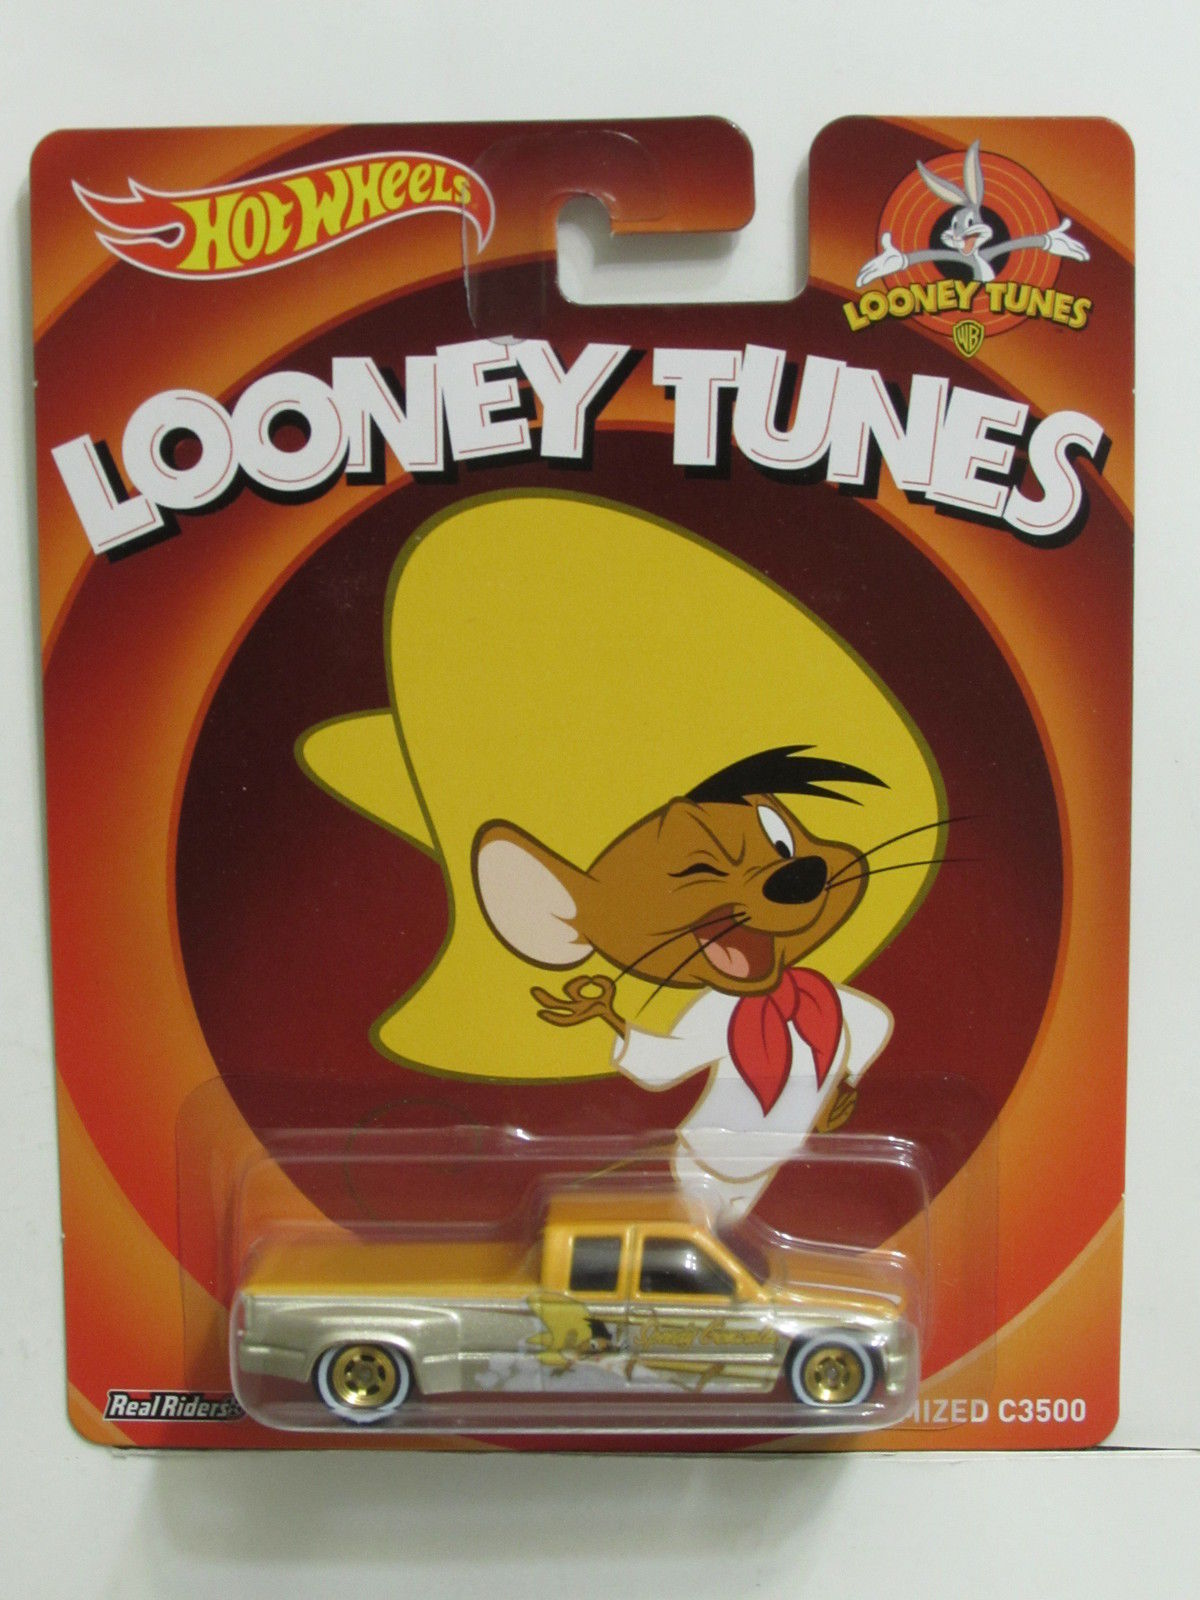 HOT WHEELS LOONEY TUNES '71 PLYMOUTH SATELLITE